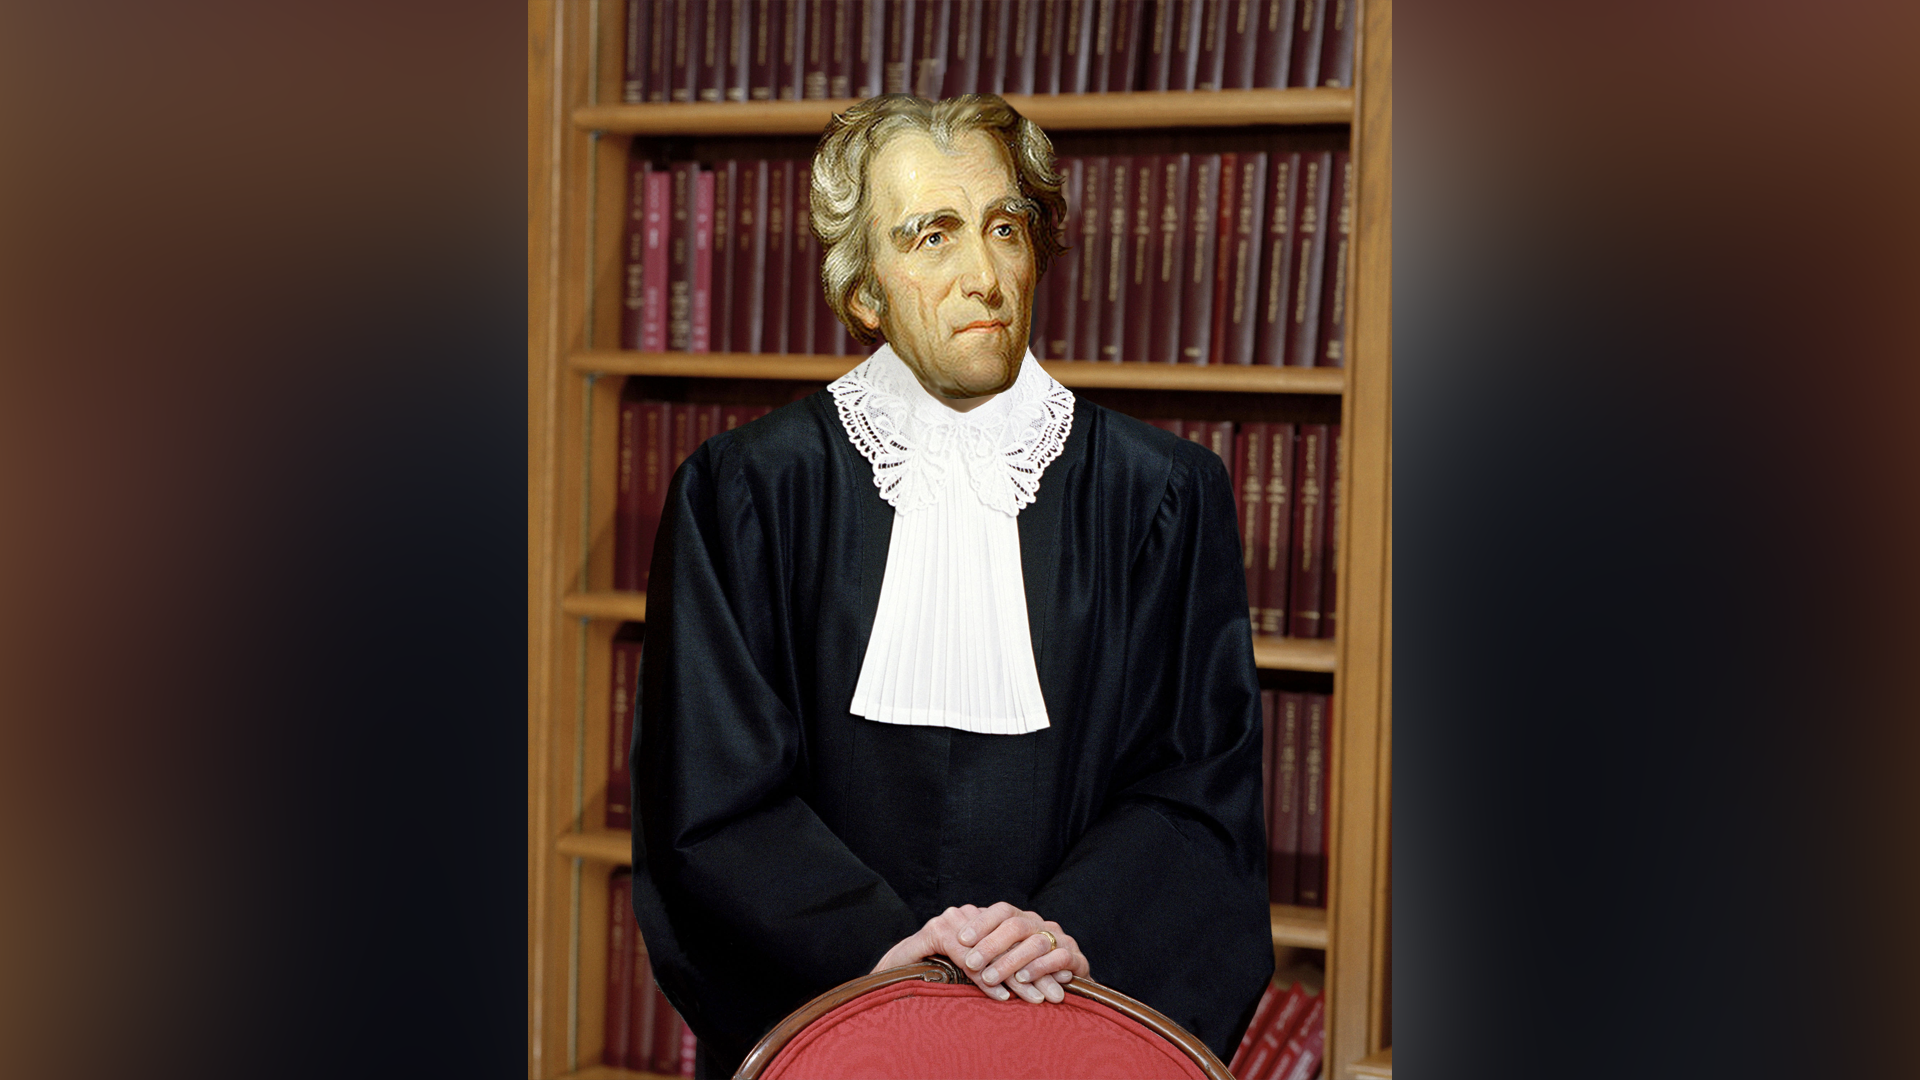 After spending only one year as a Senator in Washington, Jackson returned home to work as a judge for the Tennessee superior court. Source:  http://millercenter.org/president/jackson/essays/biography/print